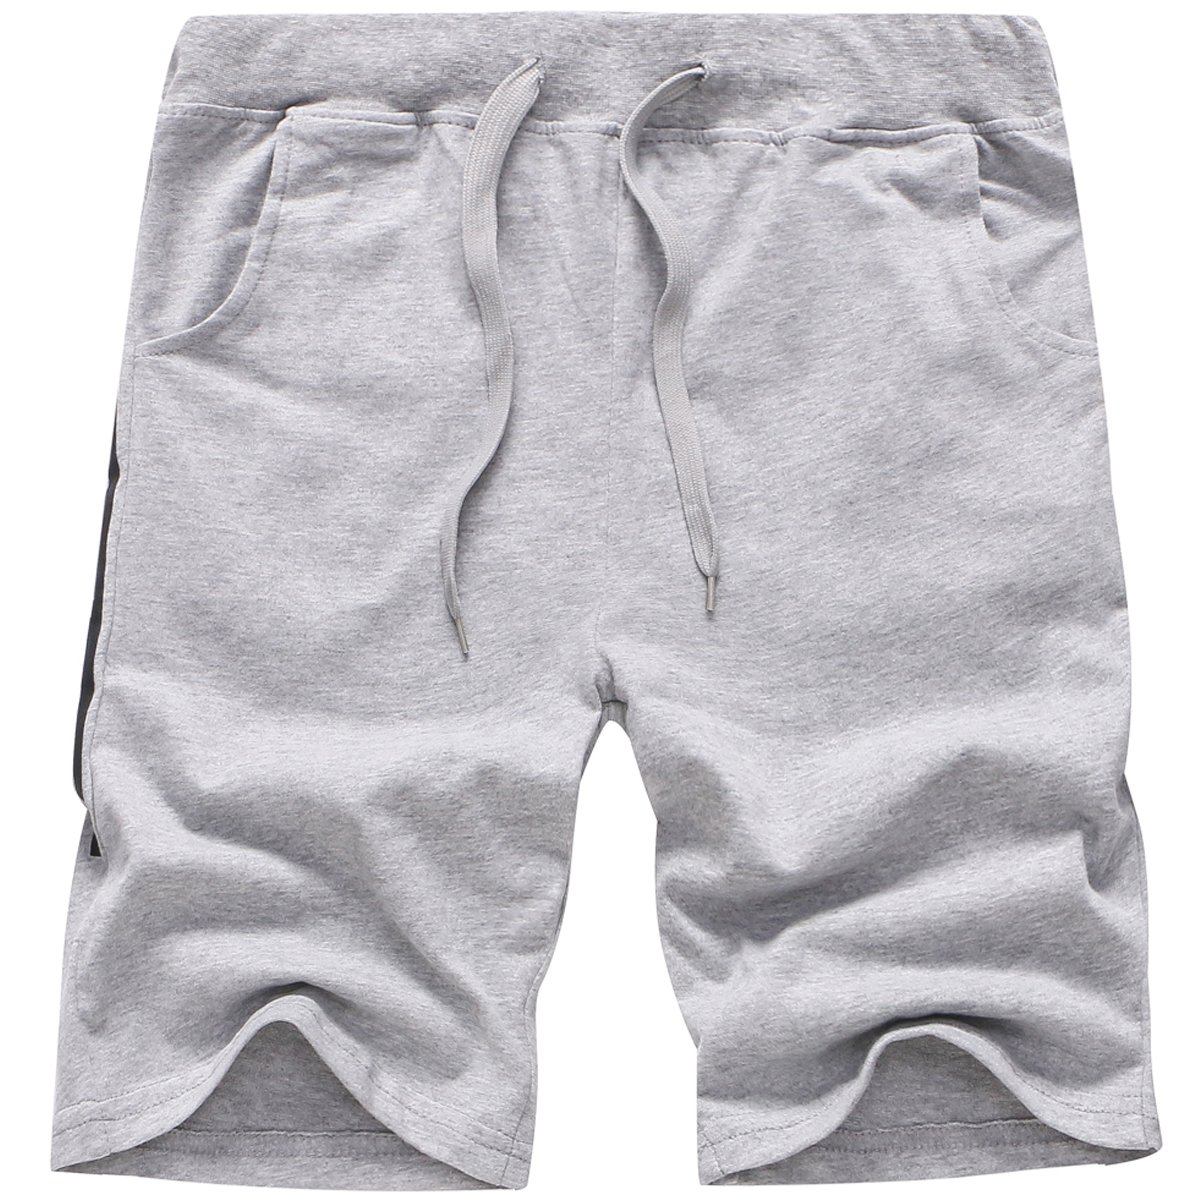 AOWKULAE Boys' Cotton Pull on Shorts